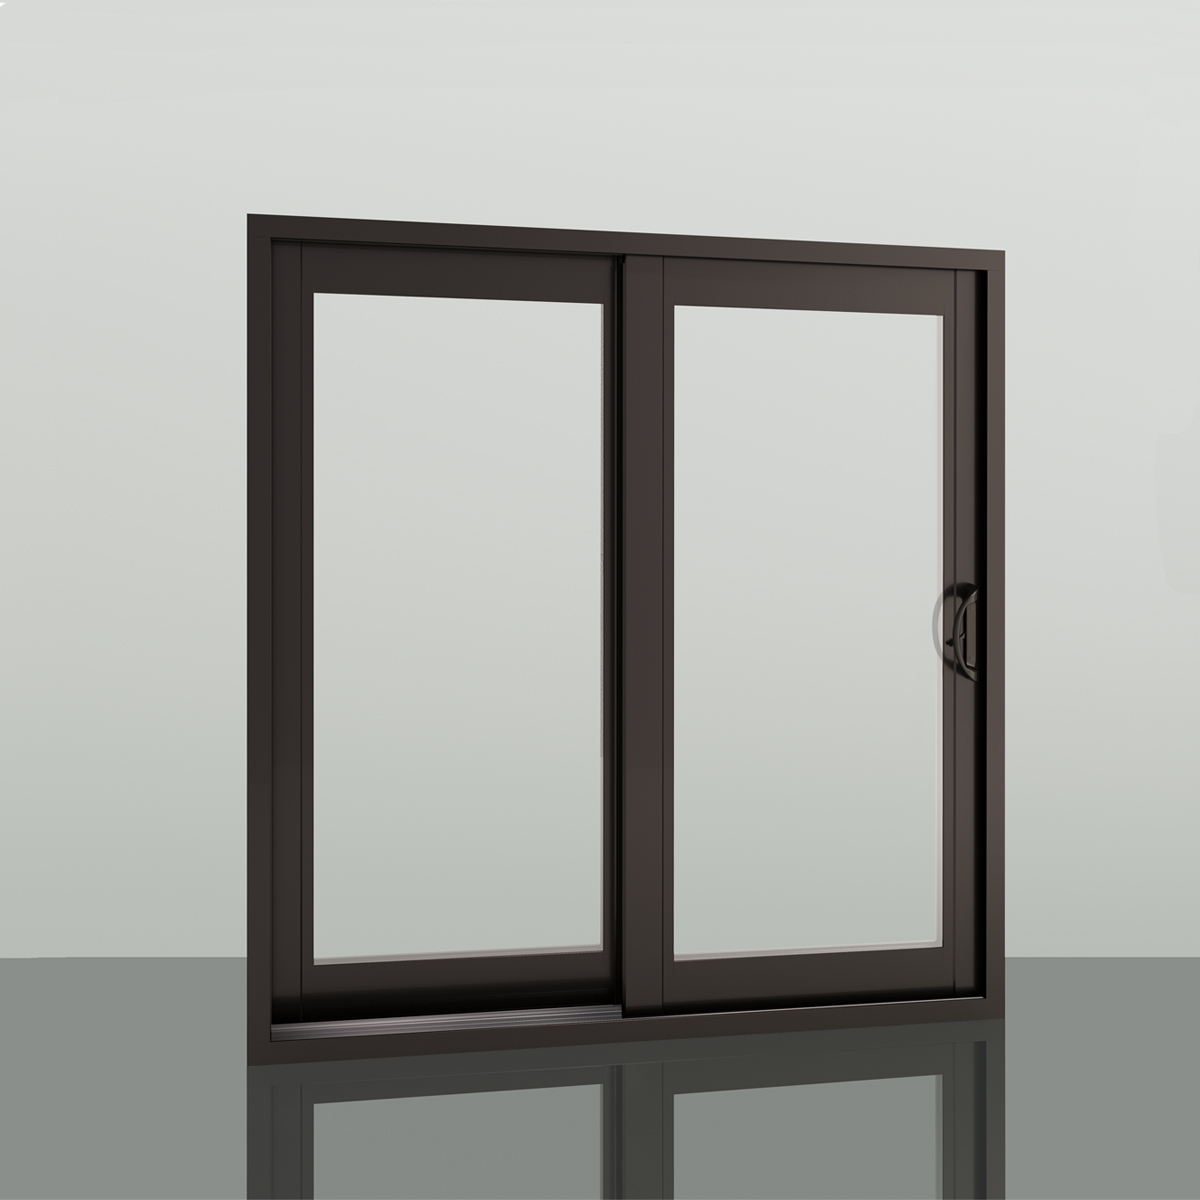 & Sliding Doors | Patio Doors | MI Windows and Doors